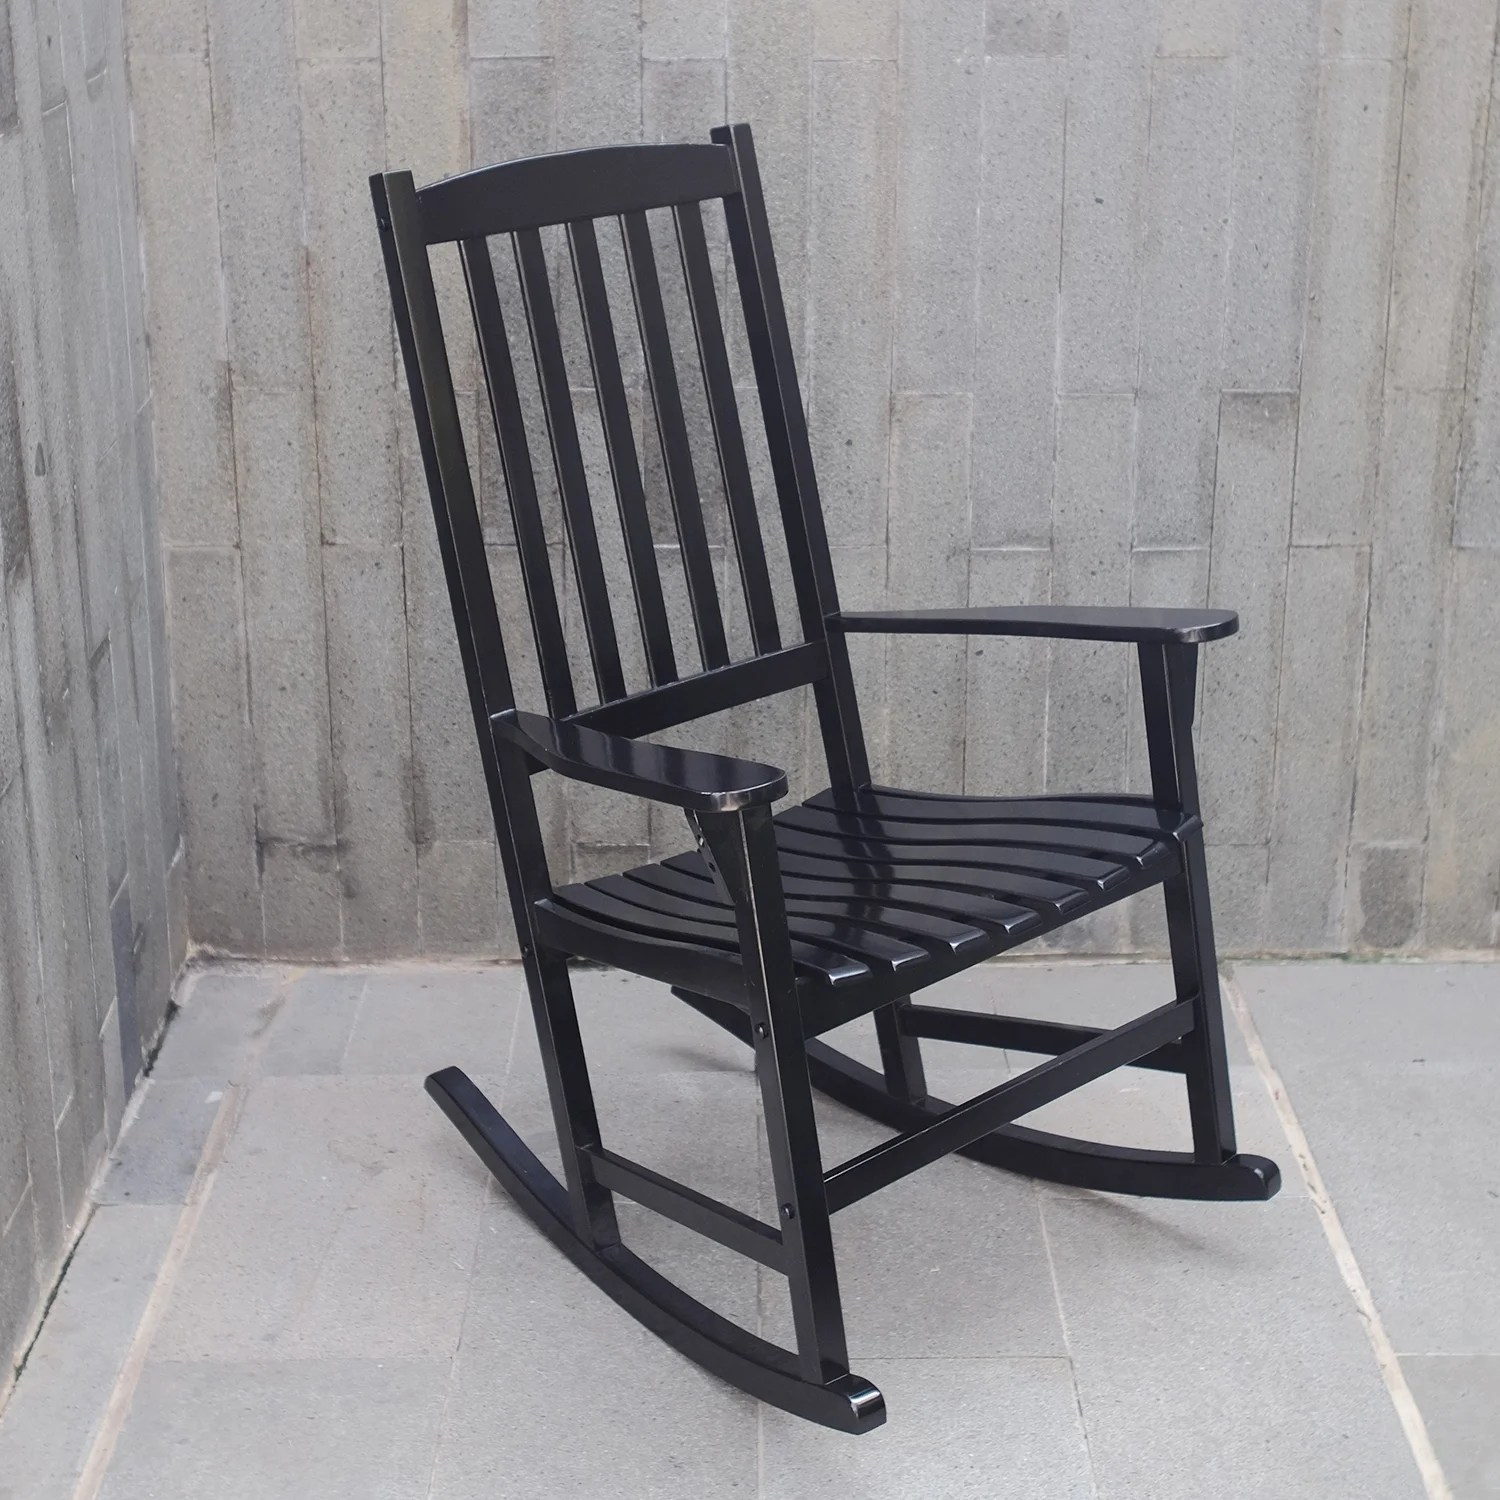 Shop Black Friday Deals On Cambridge Casual Alston Porch Rocking Chair Overstock 11454238